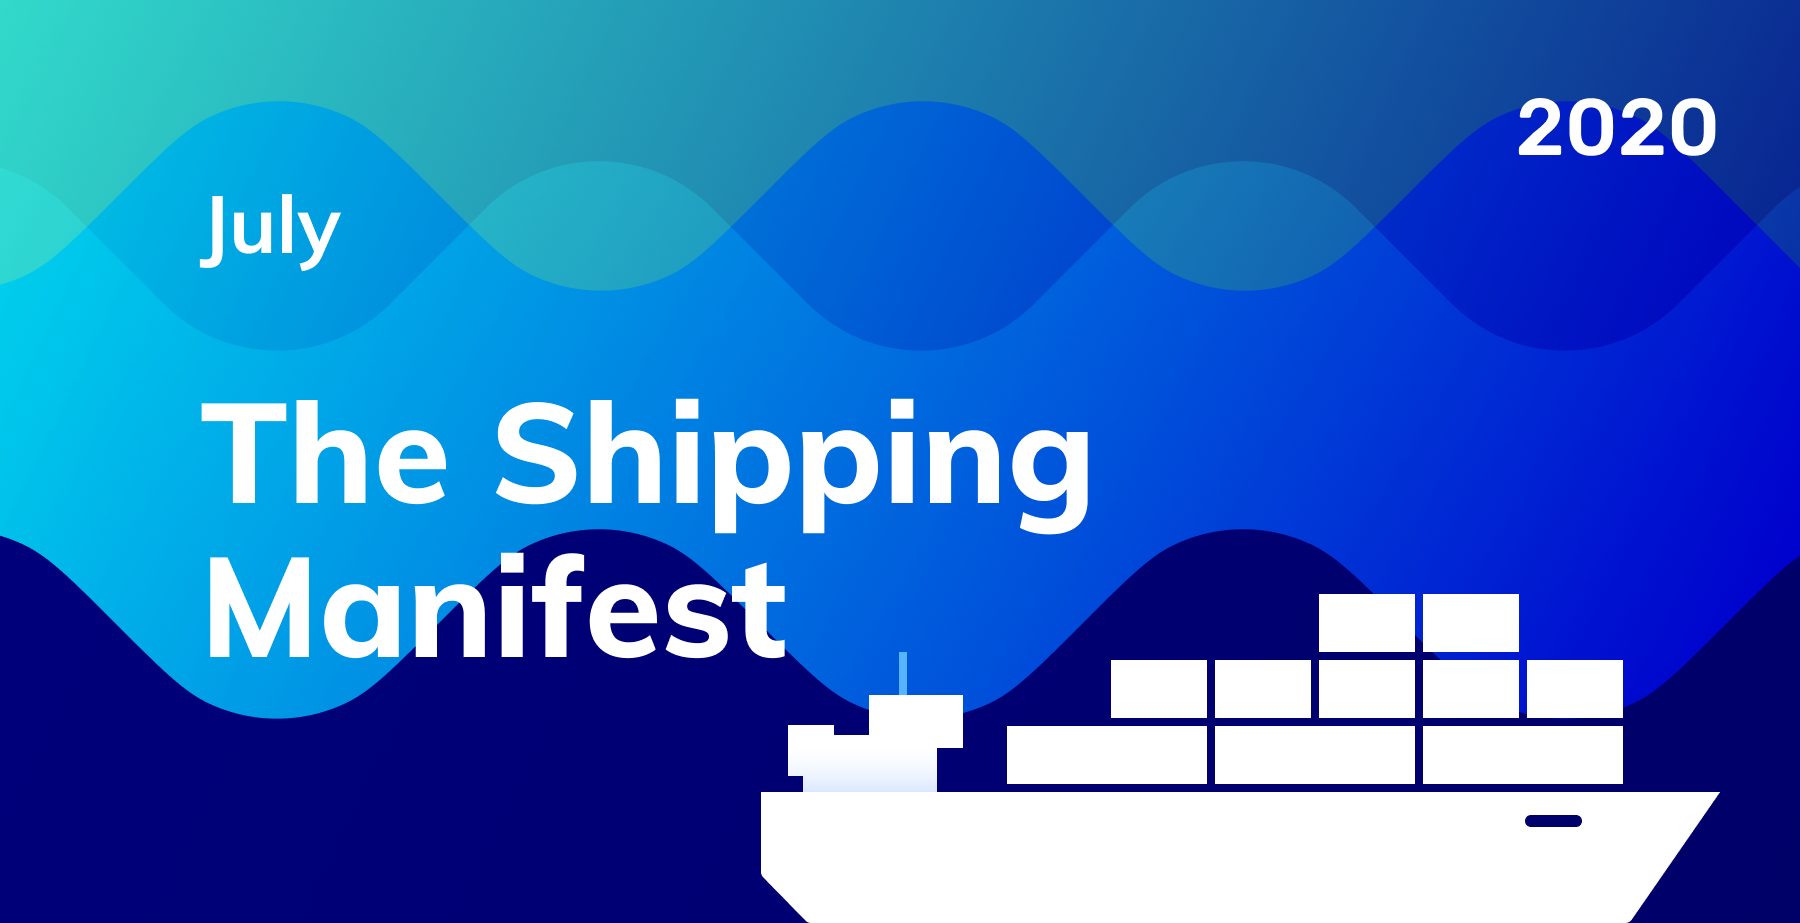 The Shipping Manifest: July 2020